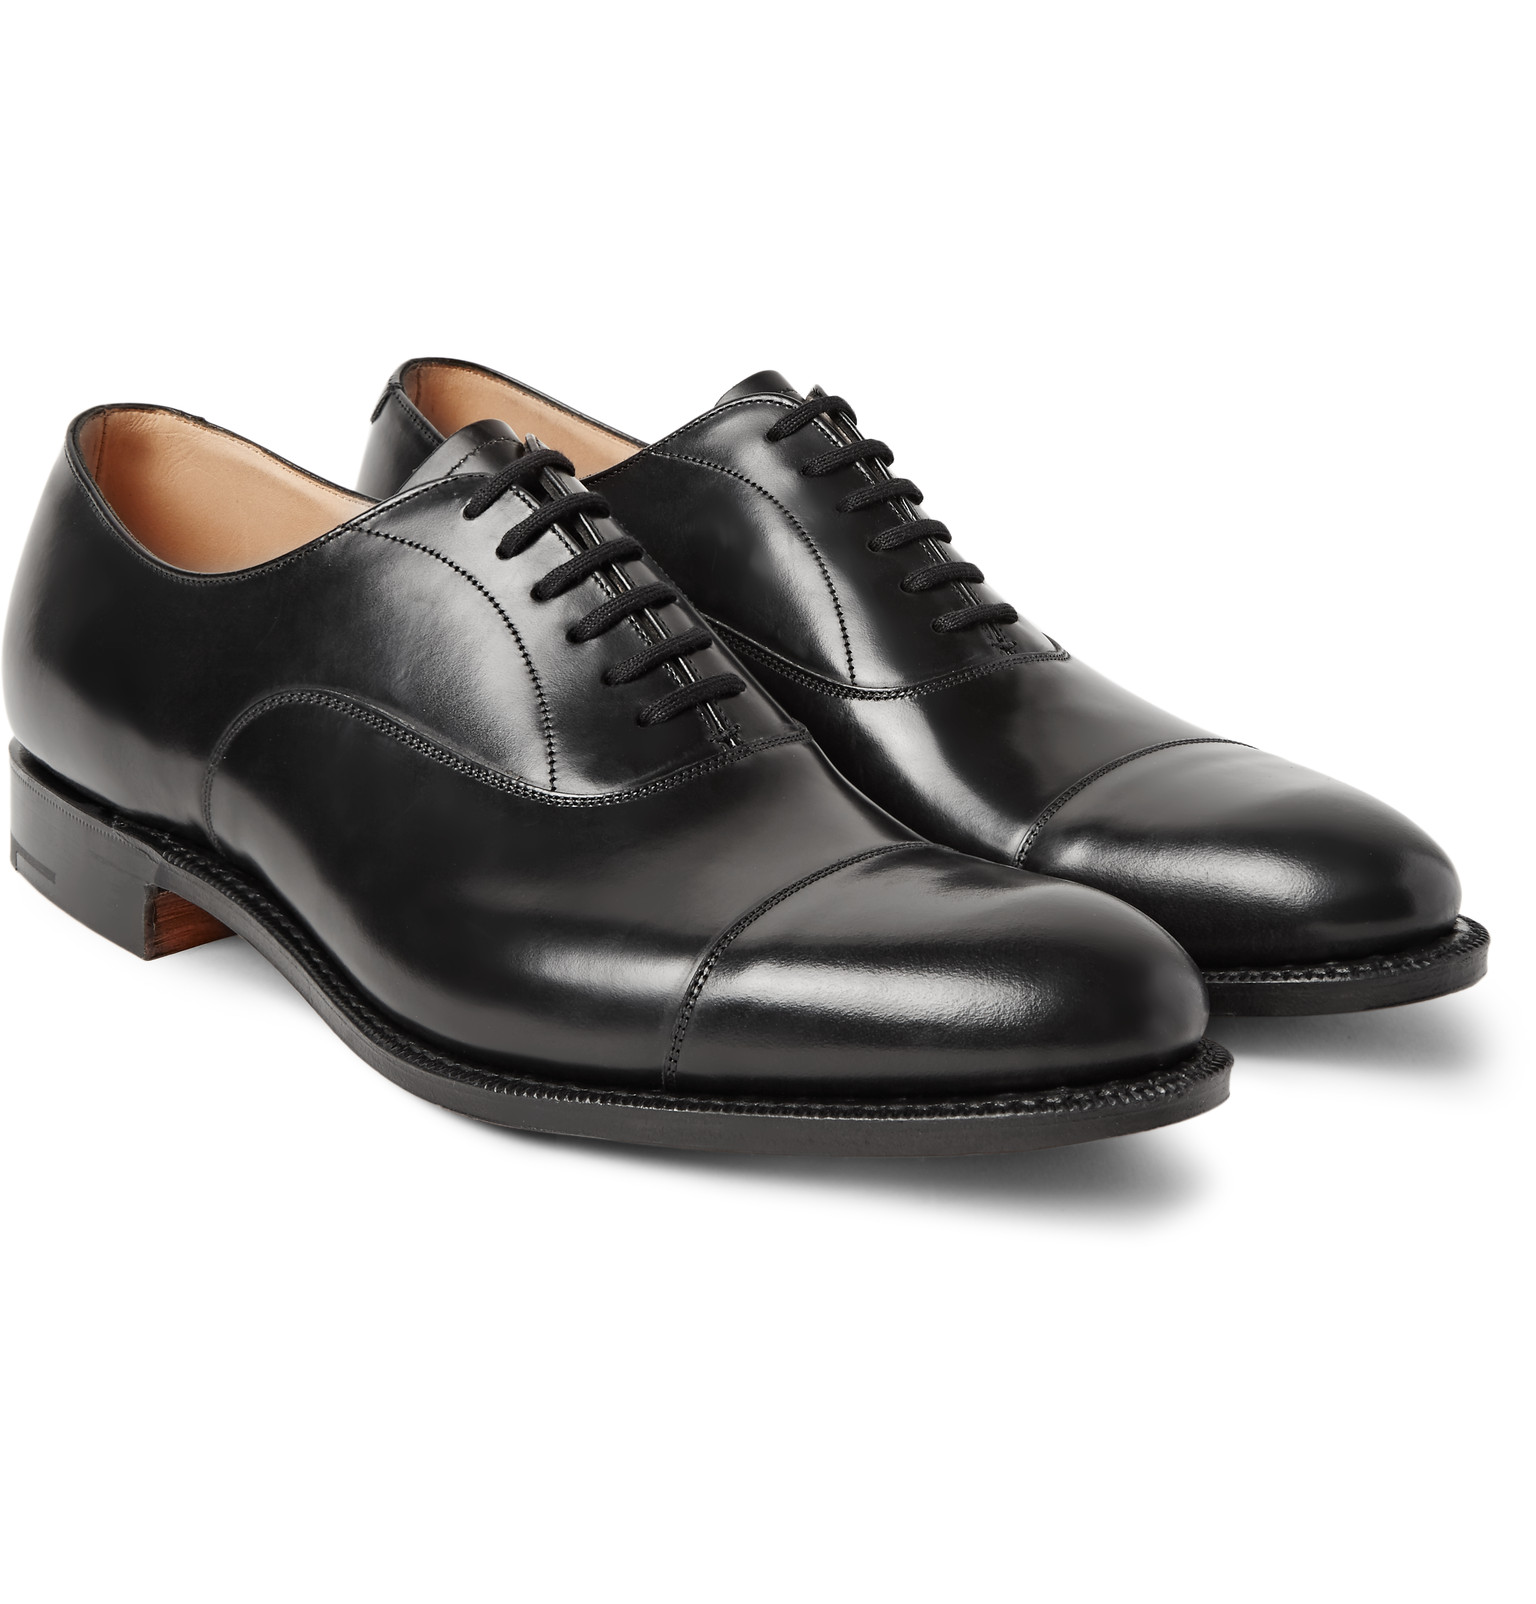 church shoes churchu0027sdubai polished-leather oxford shoes evoijhi